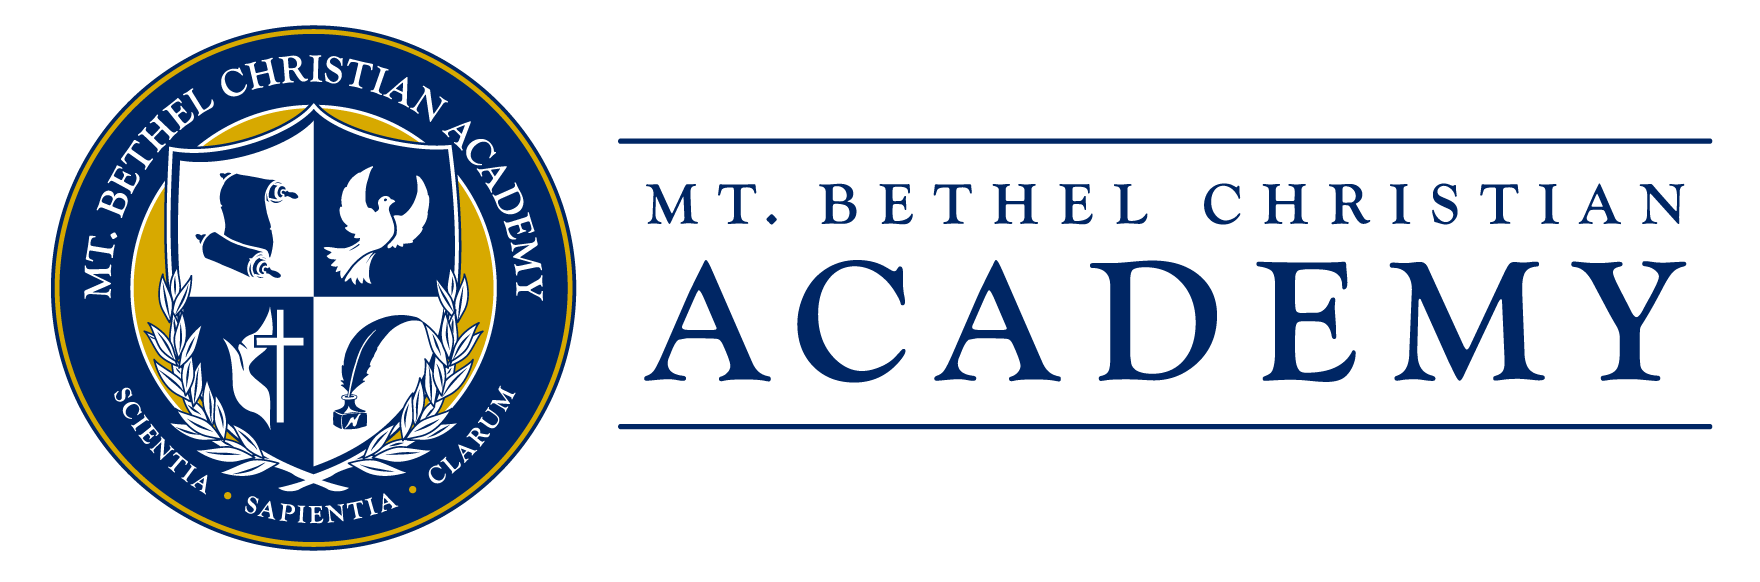 e6bfd1eca3 Opportunities Abound At Mt. Bethel Christian Academy - East Cobber